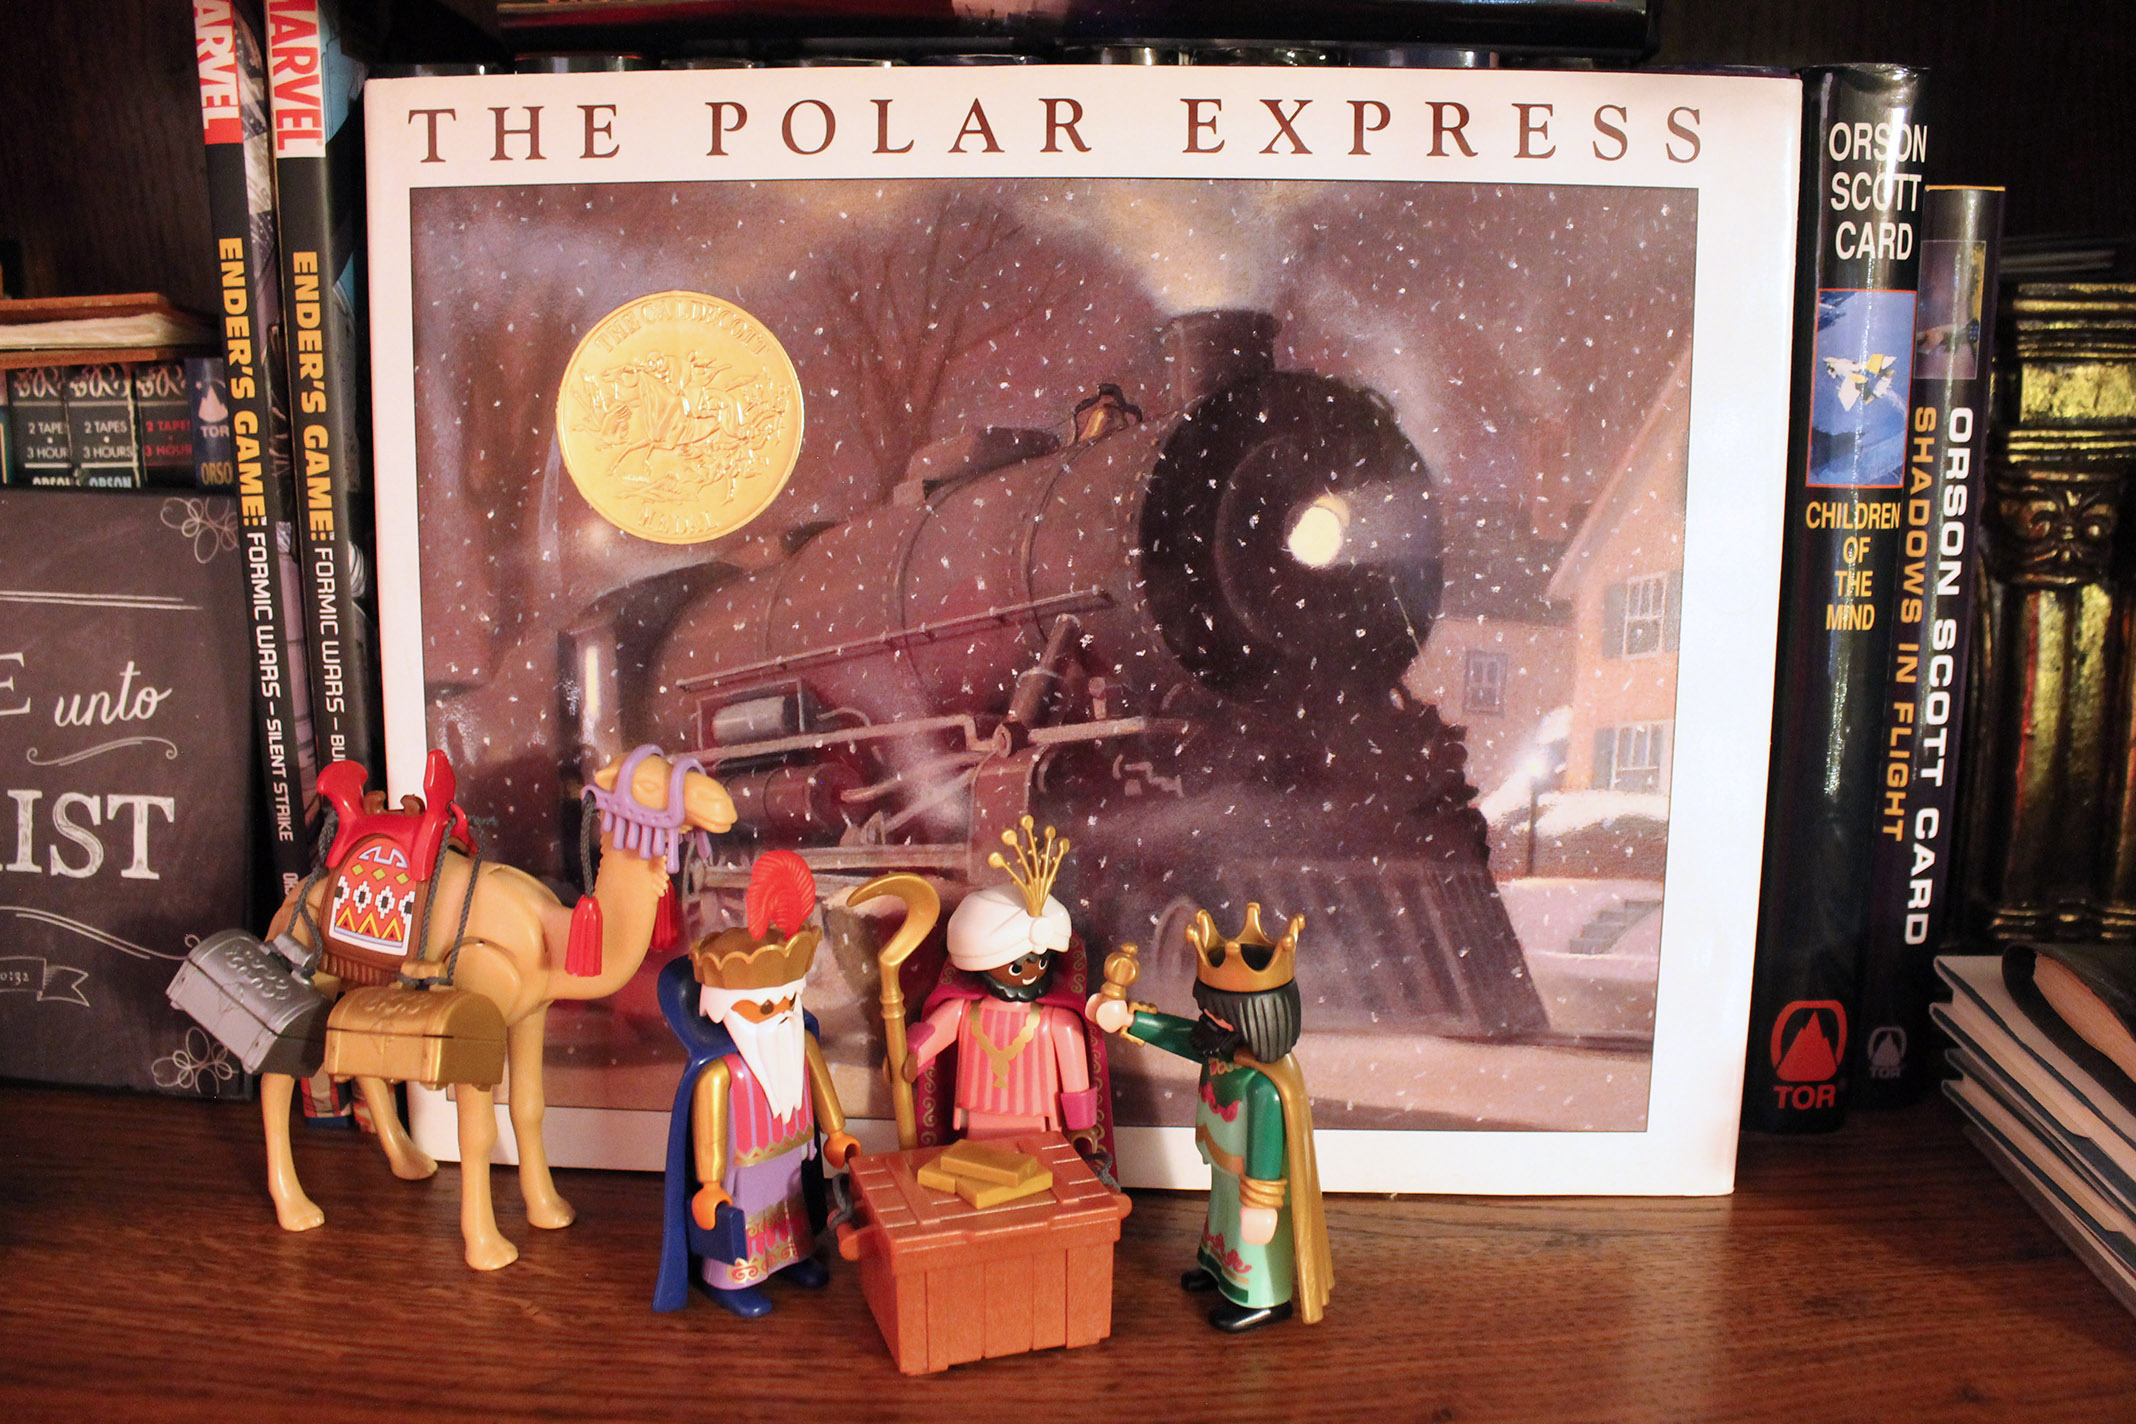 The three wisemen gain access to golden tickets for the Polar Express.